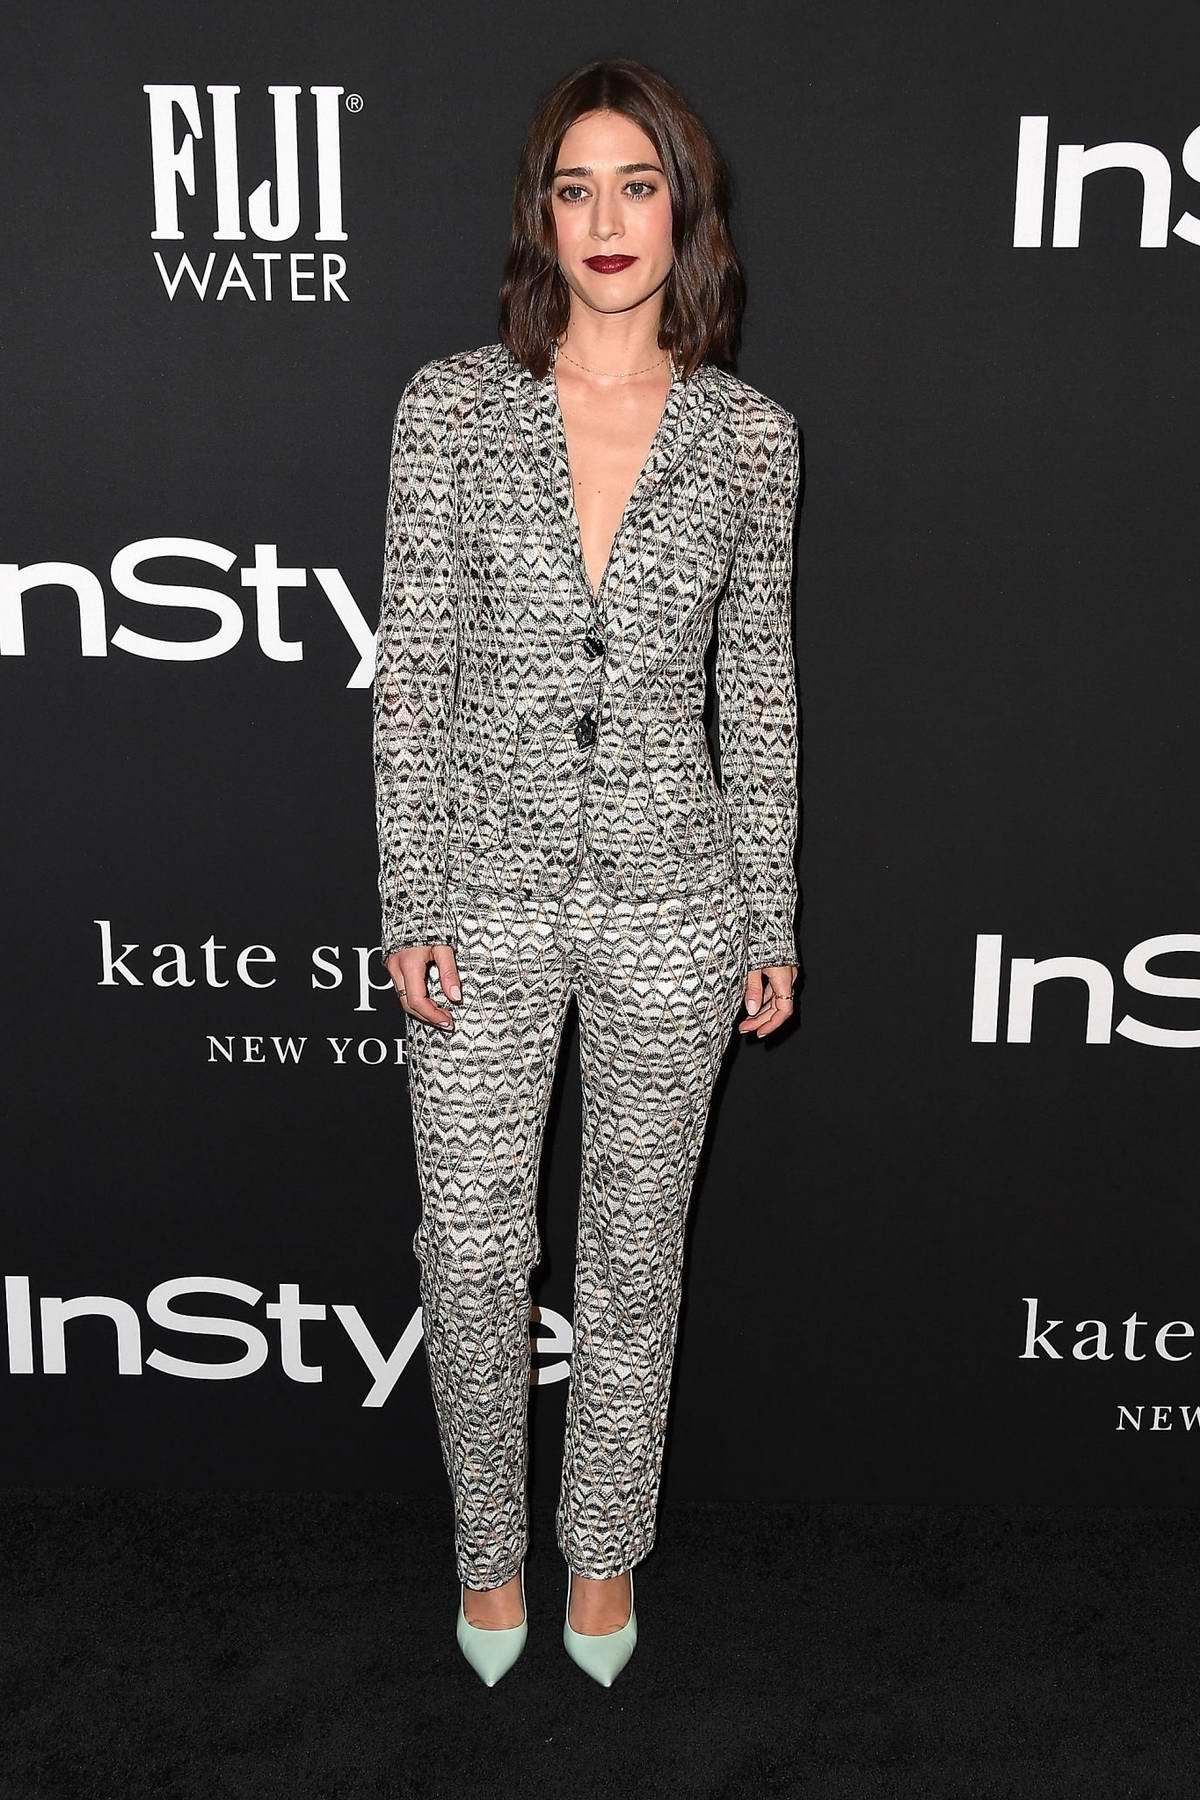 Lizzy Caplan attends the 4th Annual InStyle Awards 2018 at the Getty Center in Los Angeles